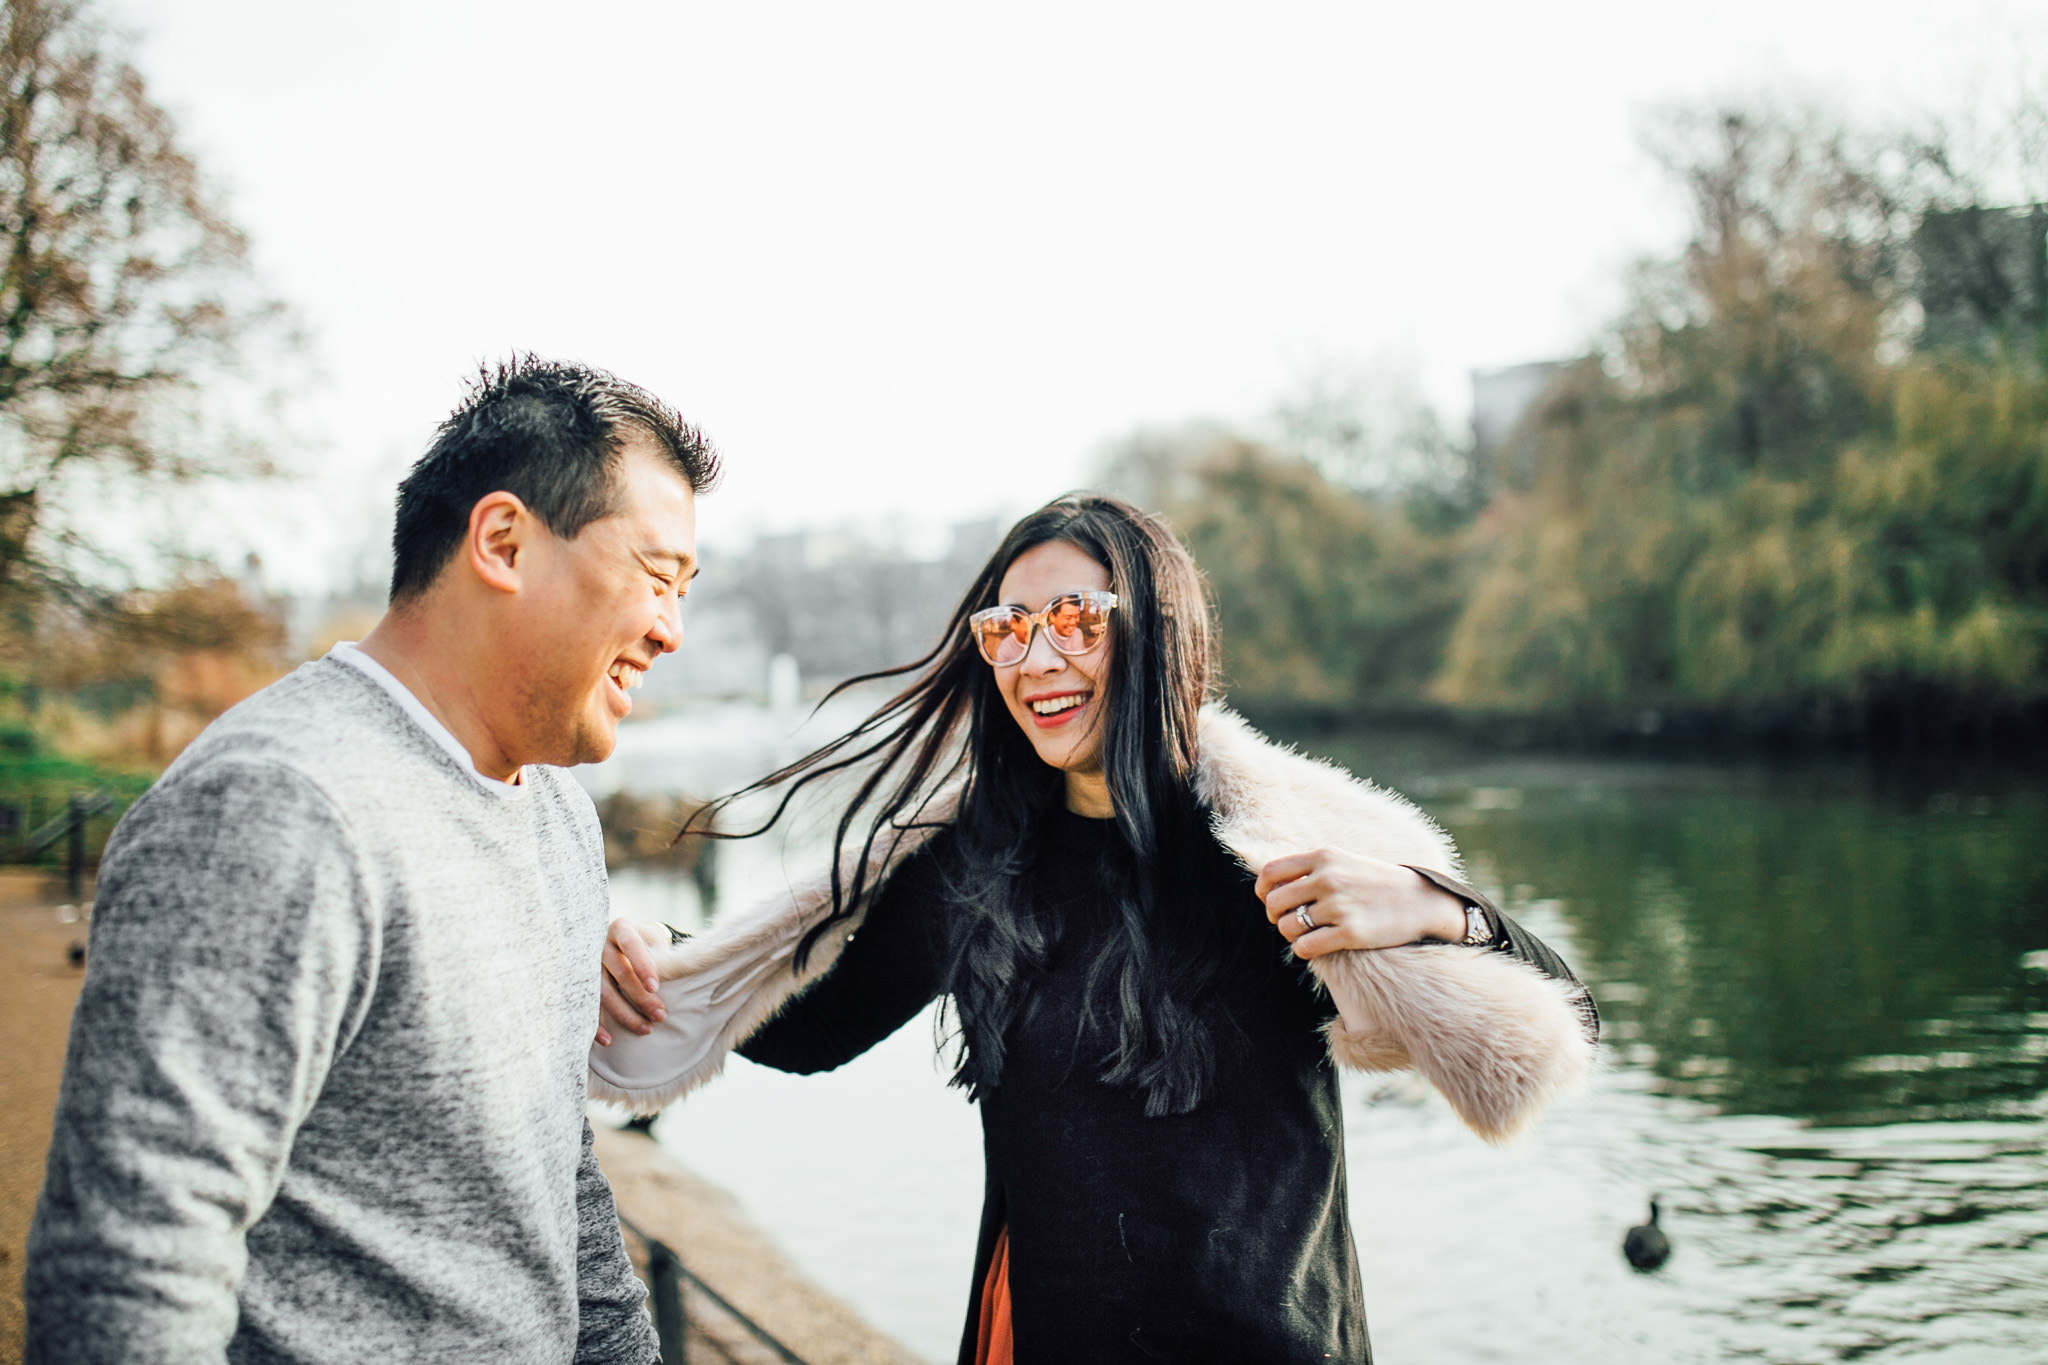 London engagement shoot location - st james park and horse guards